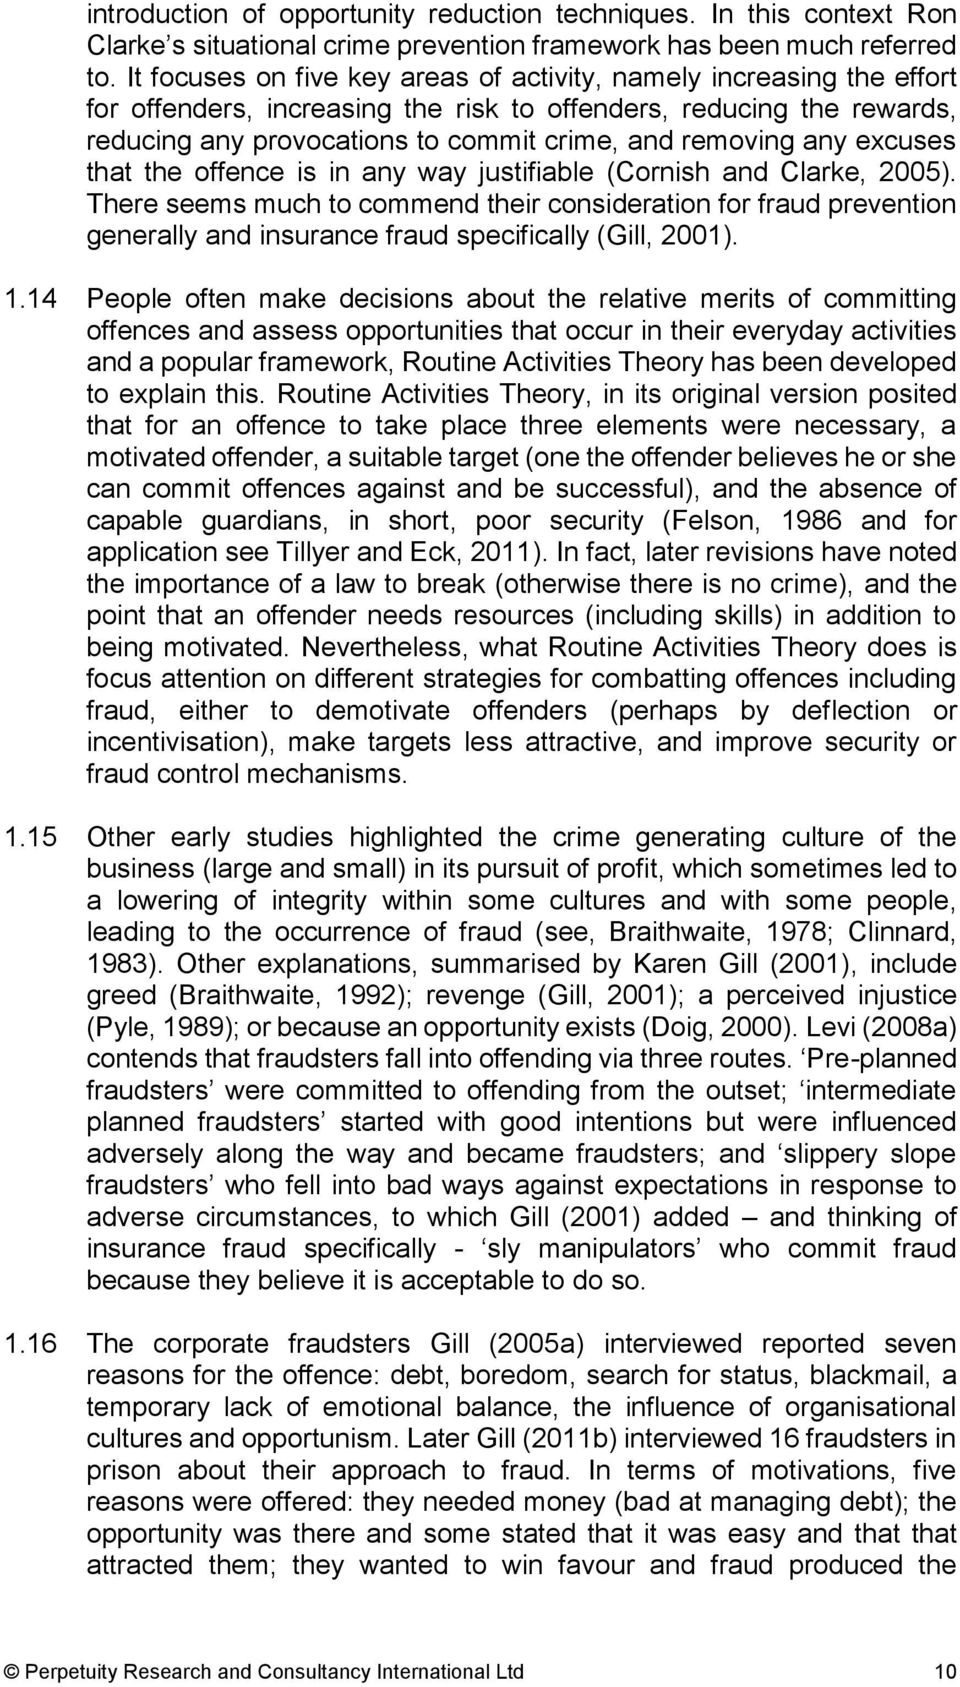 any excuses that the offence is in any way justifiable (Cornish and Clarke, 2005).